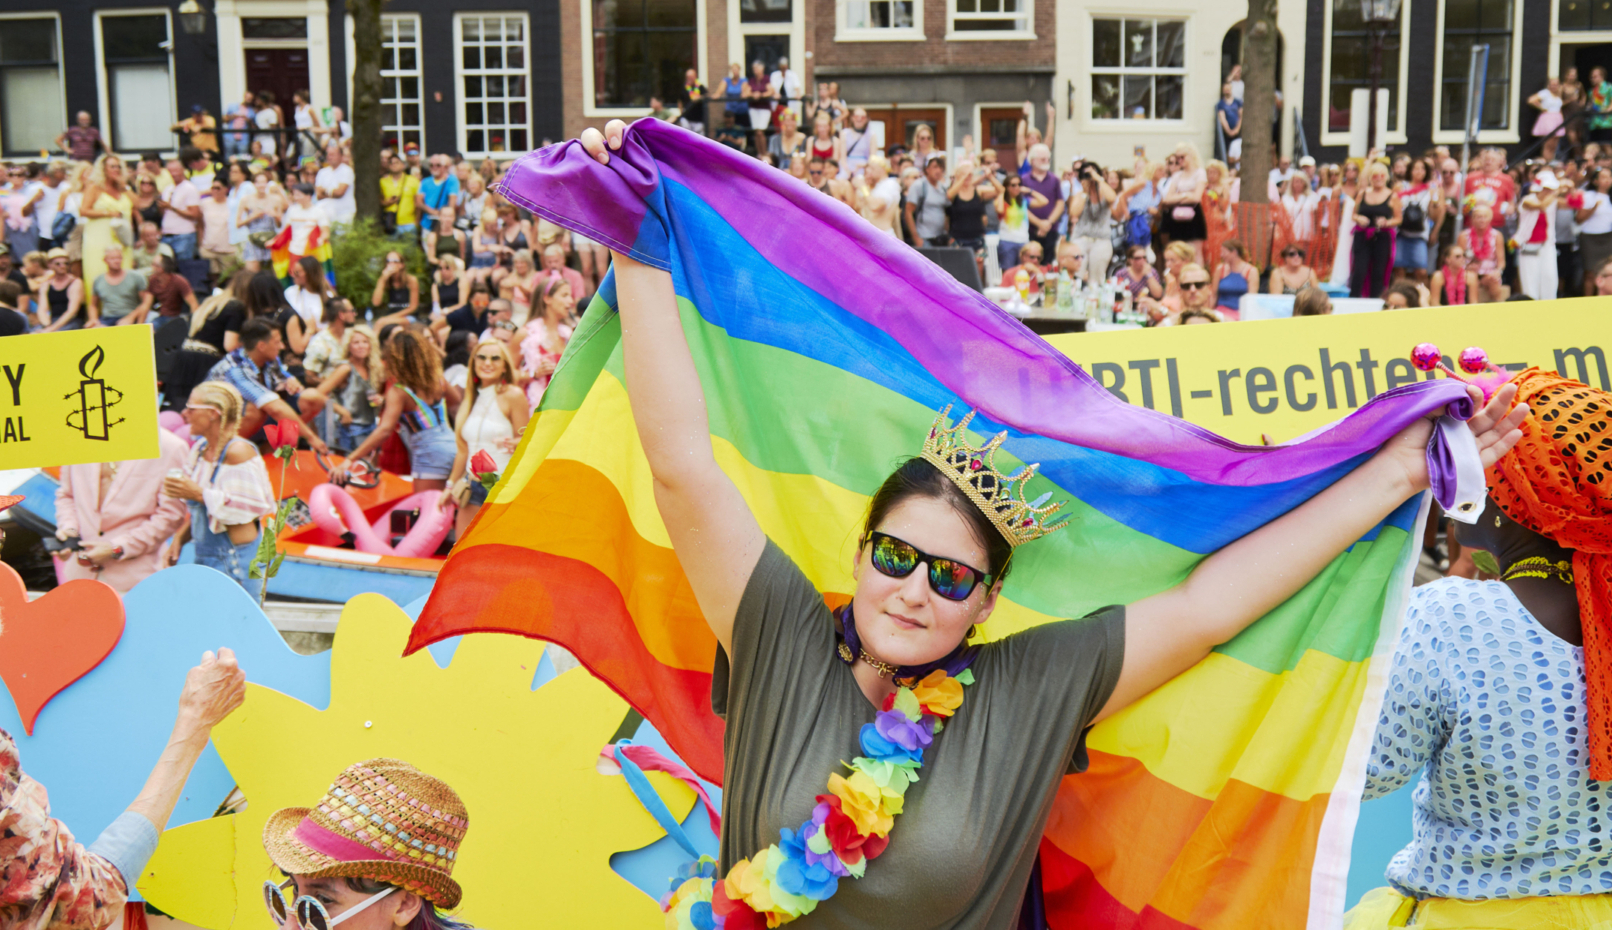 LGBTI activist Vitalina Koval from Ukraine - Canal Parade Amsterdam - Amnesty International in the Netherlands - Photo Credit: Photo Pierre Crom for Amnesty International